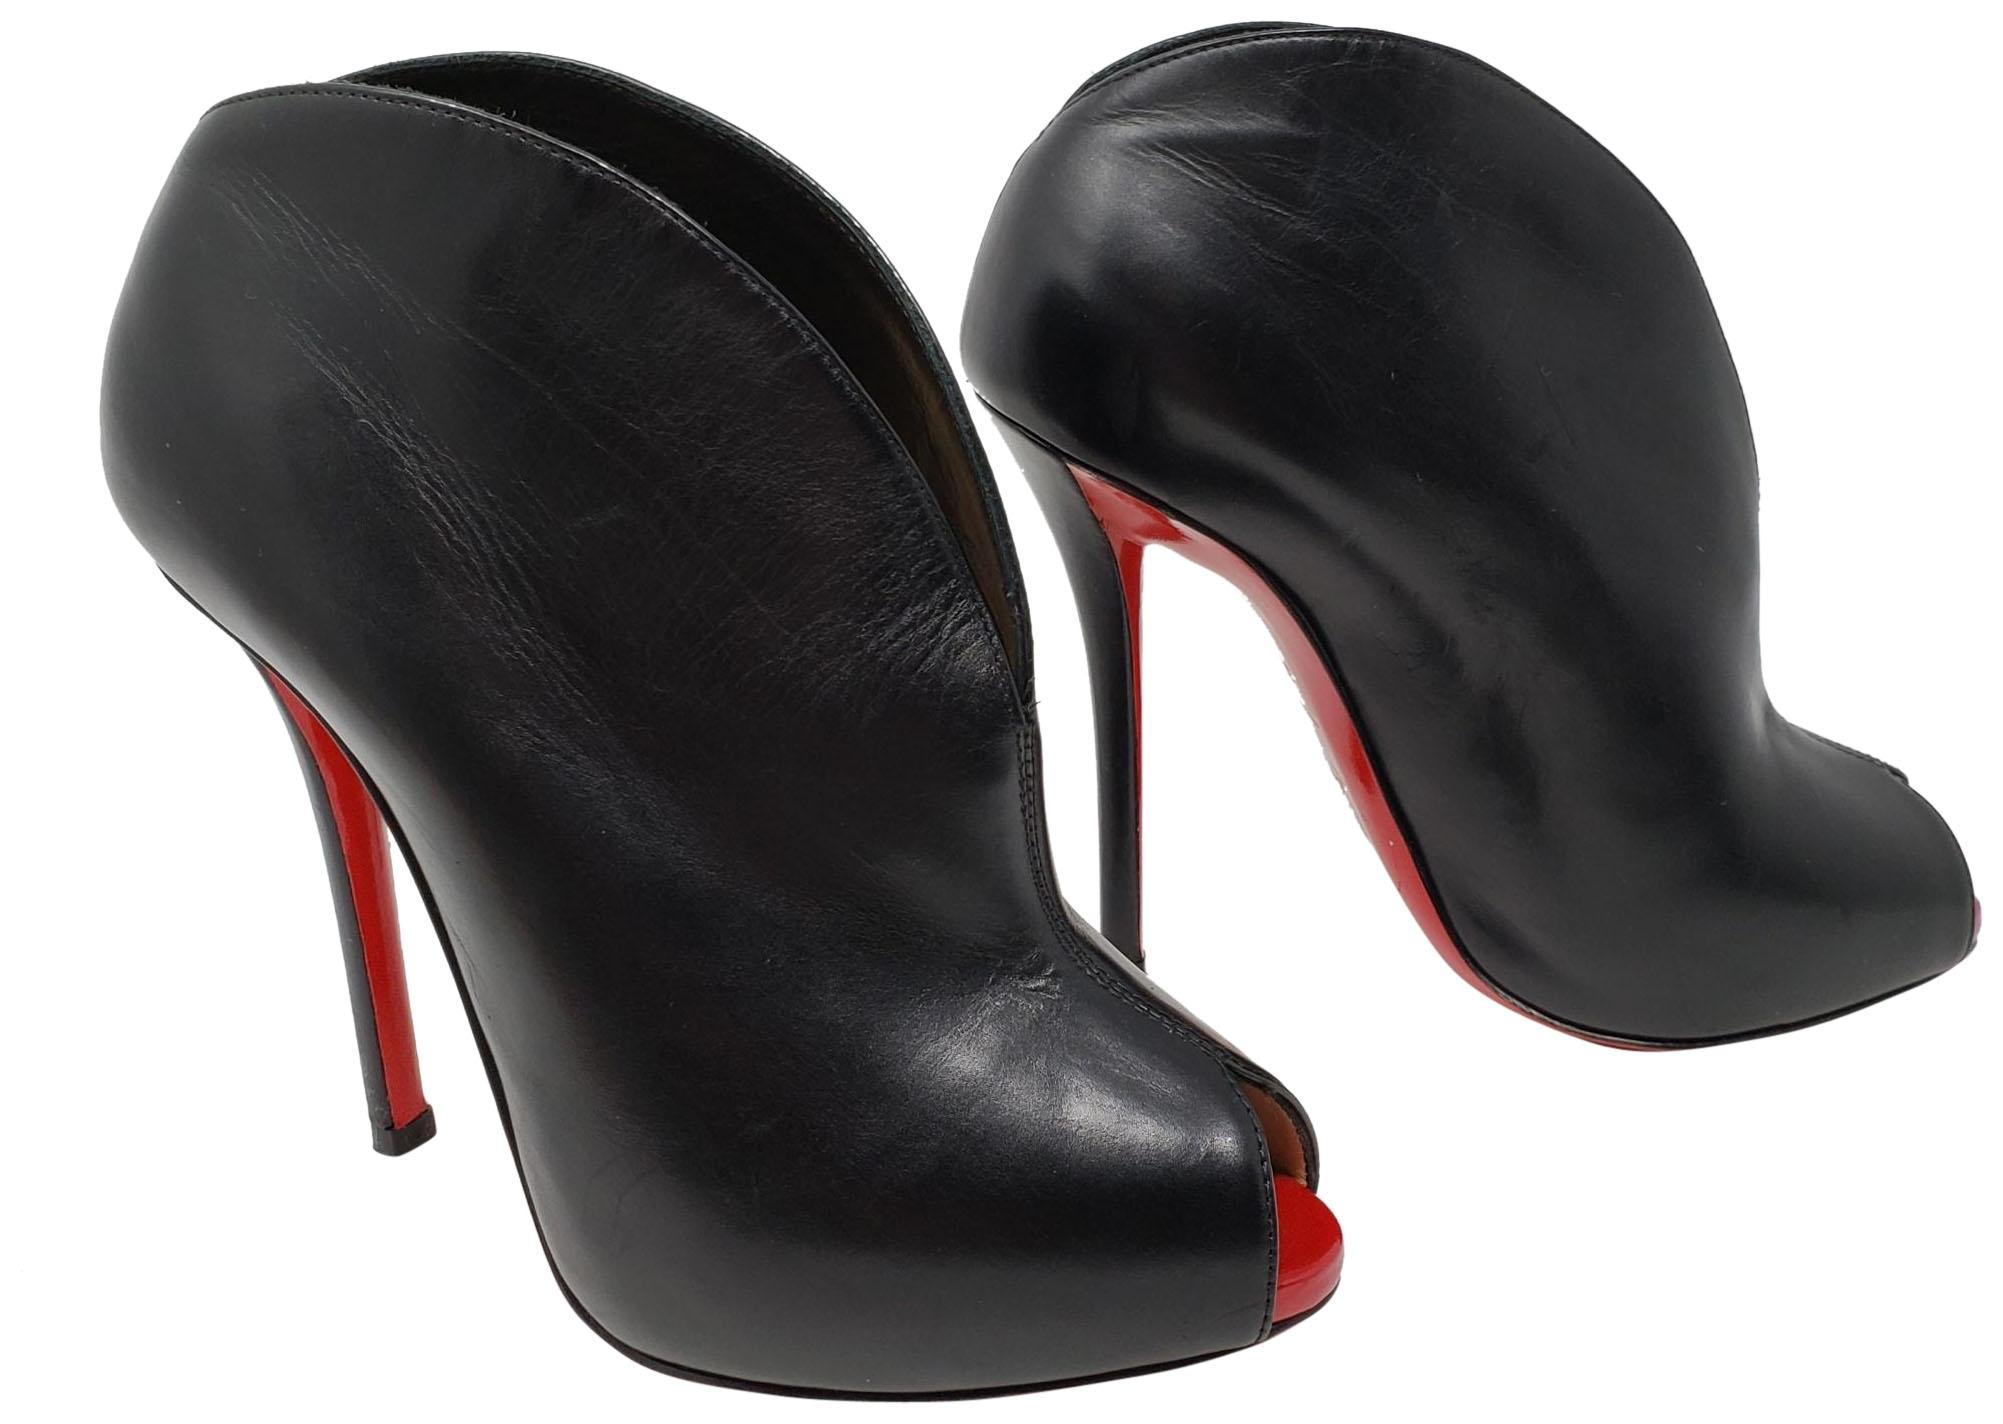 c66972b1eec4 ... best christian louboutin ankle peep toe so kate pigalle black boots  2141c 0cf6b